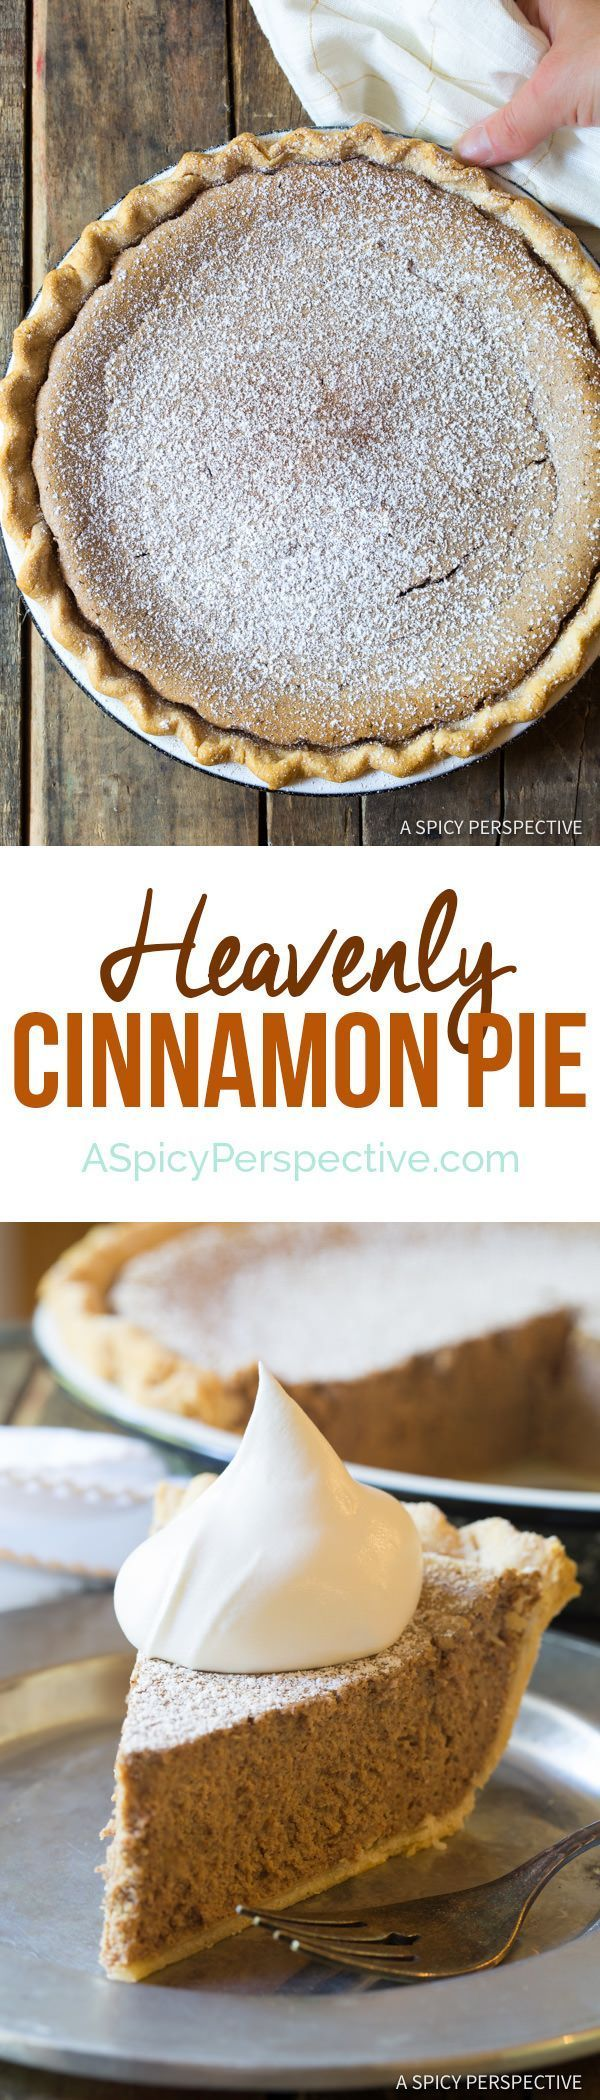 The Perfect Cinnamon Pie Recipe | http://ASpicyPerspective.com                                                                                                                                                                                 More